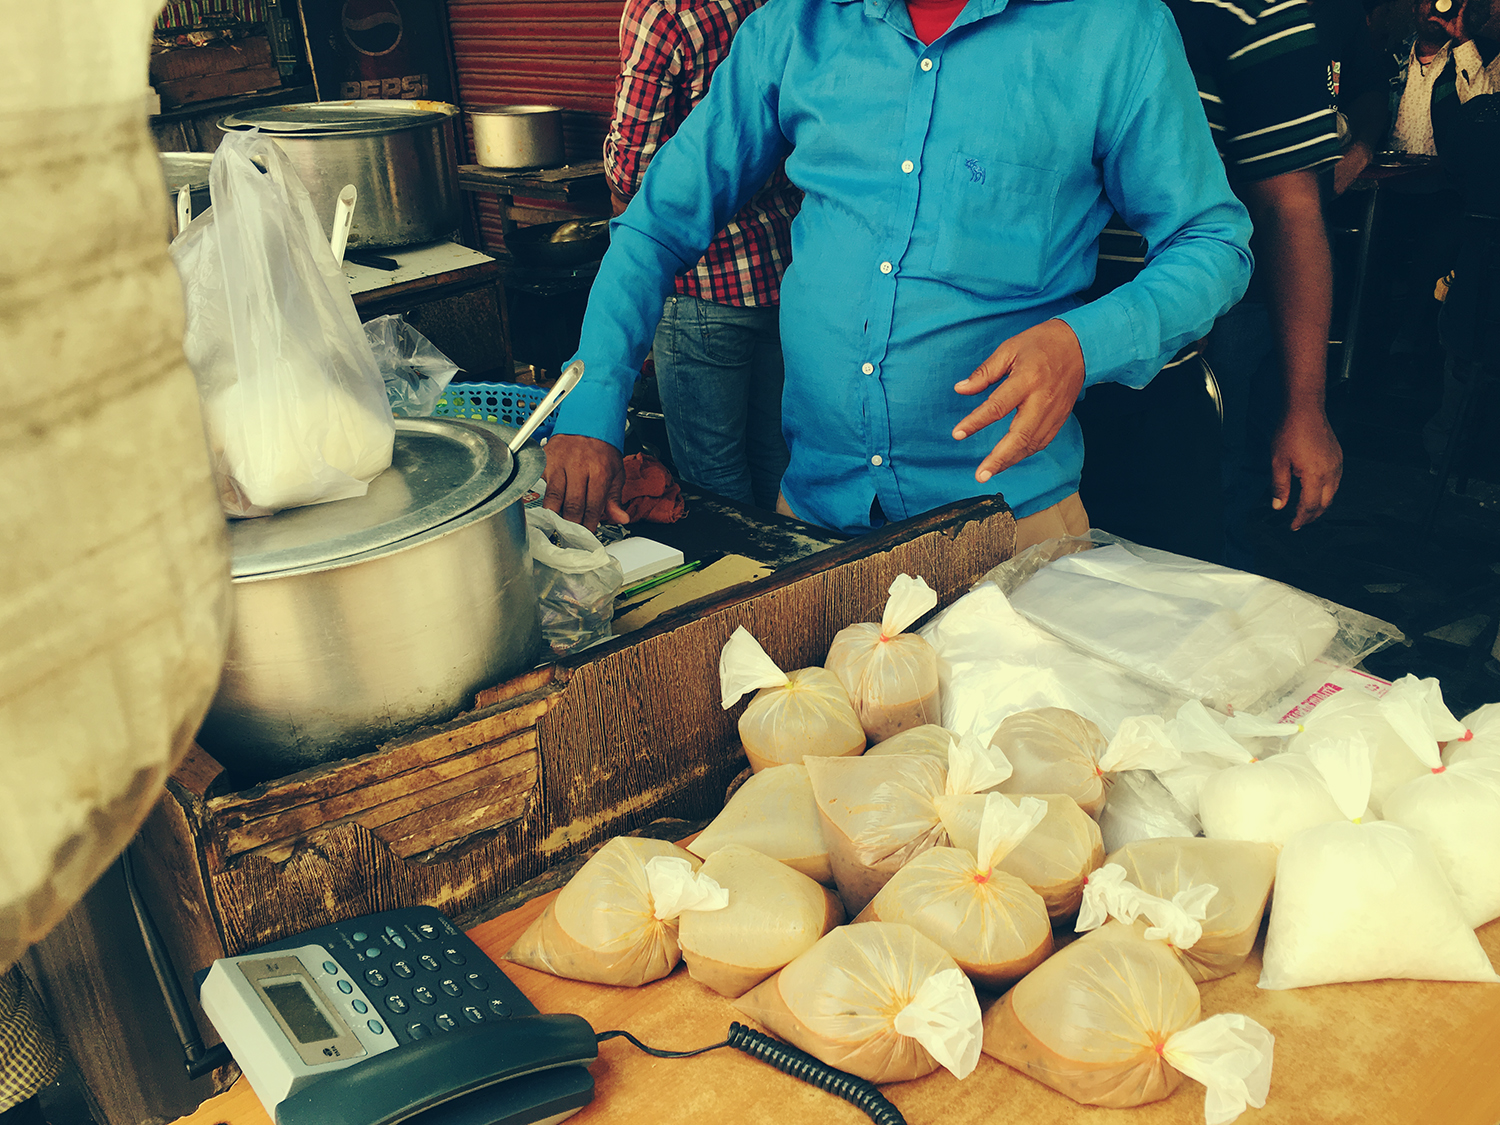 Street vendor with bags of rice ready to  go with the paneer curry stewing in the large metal pot